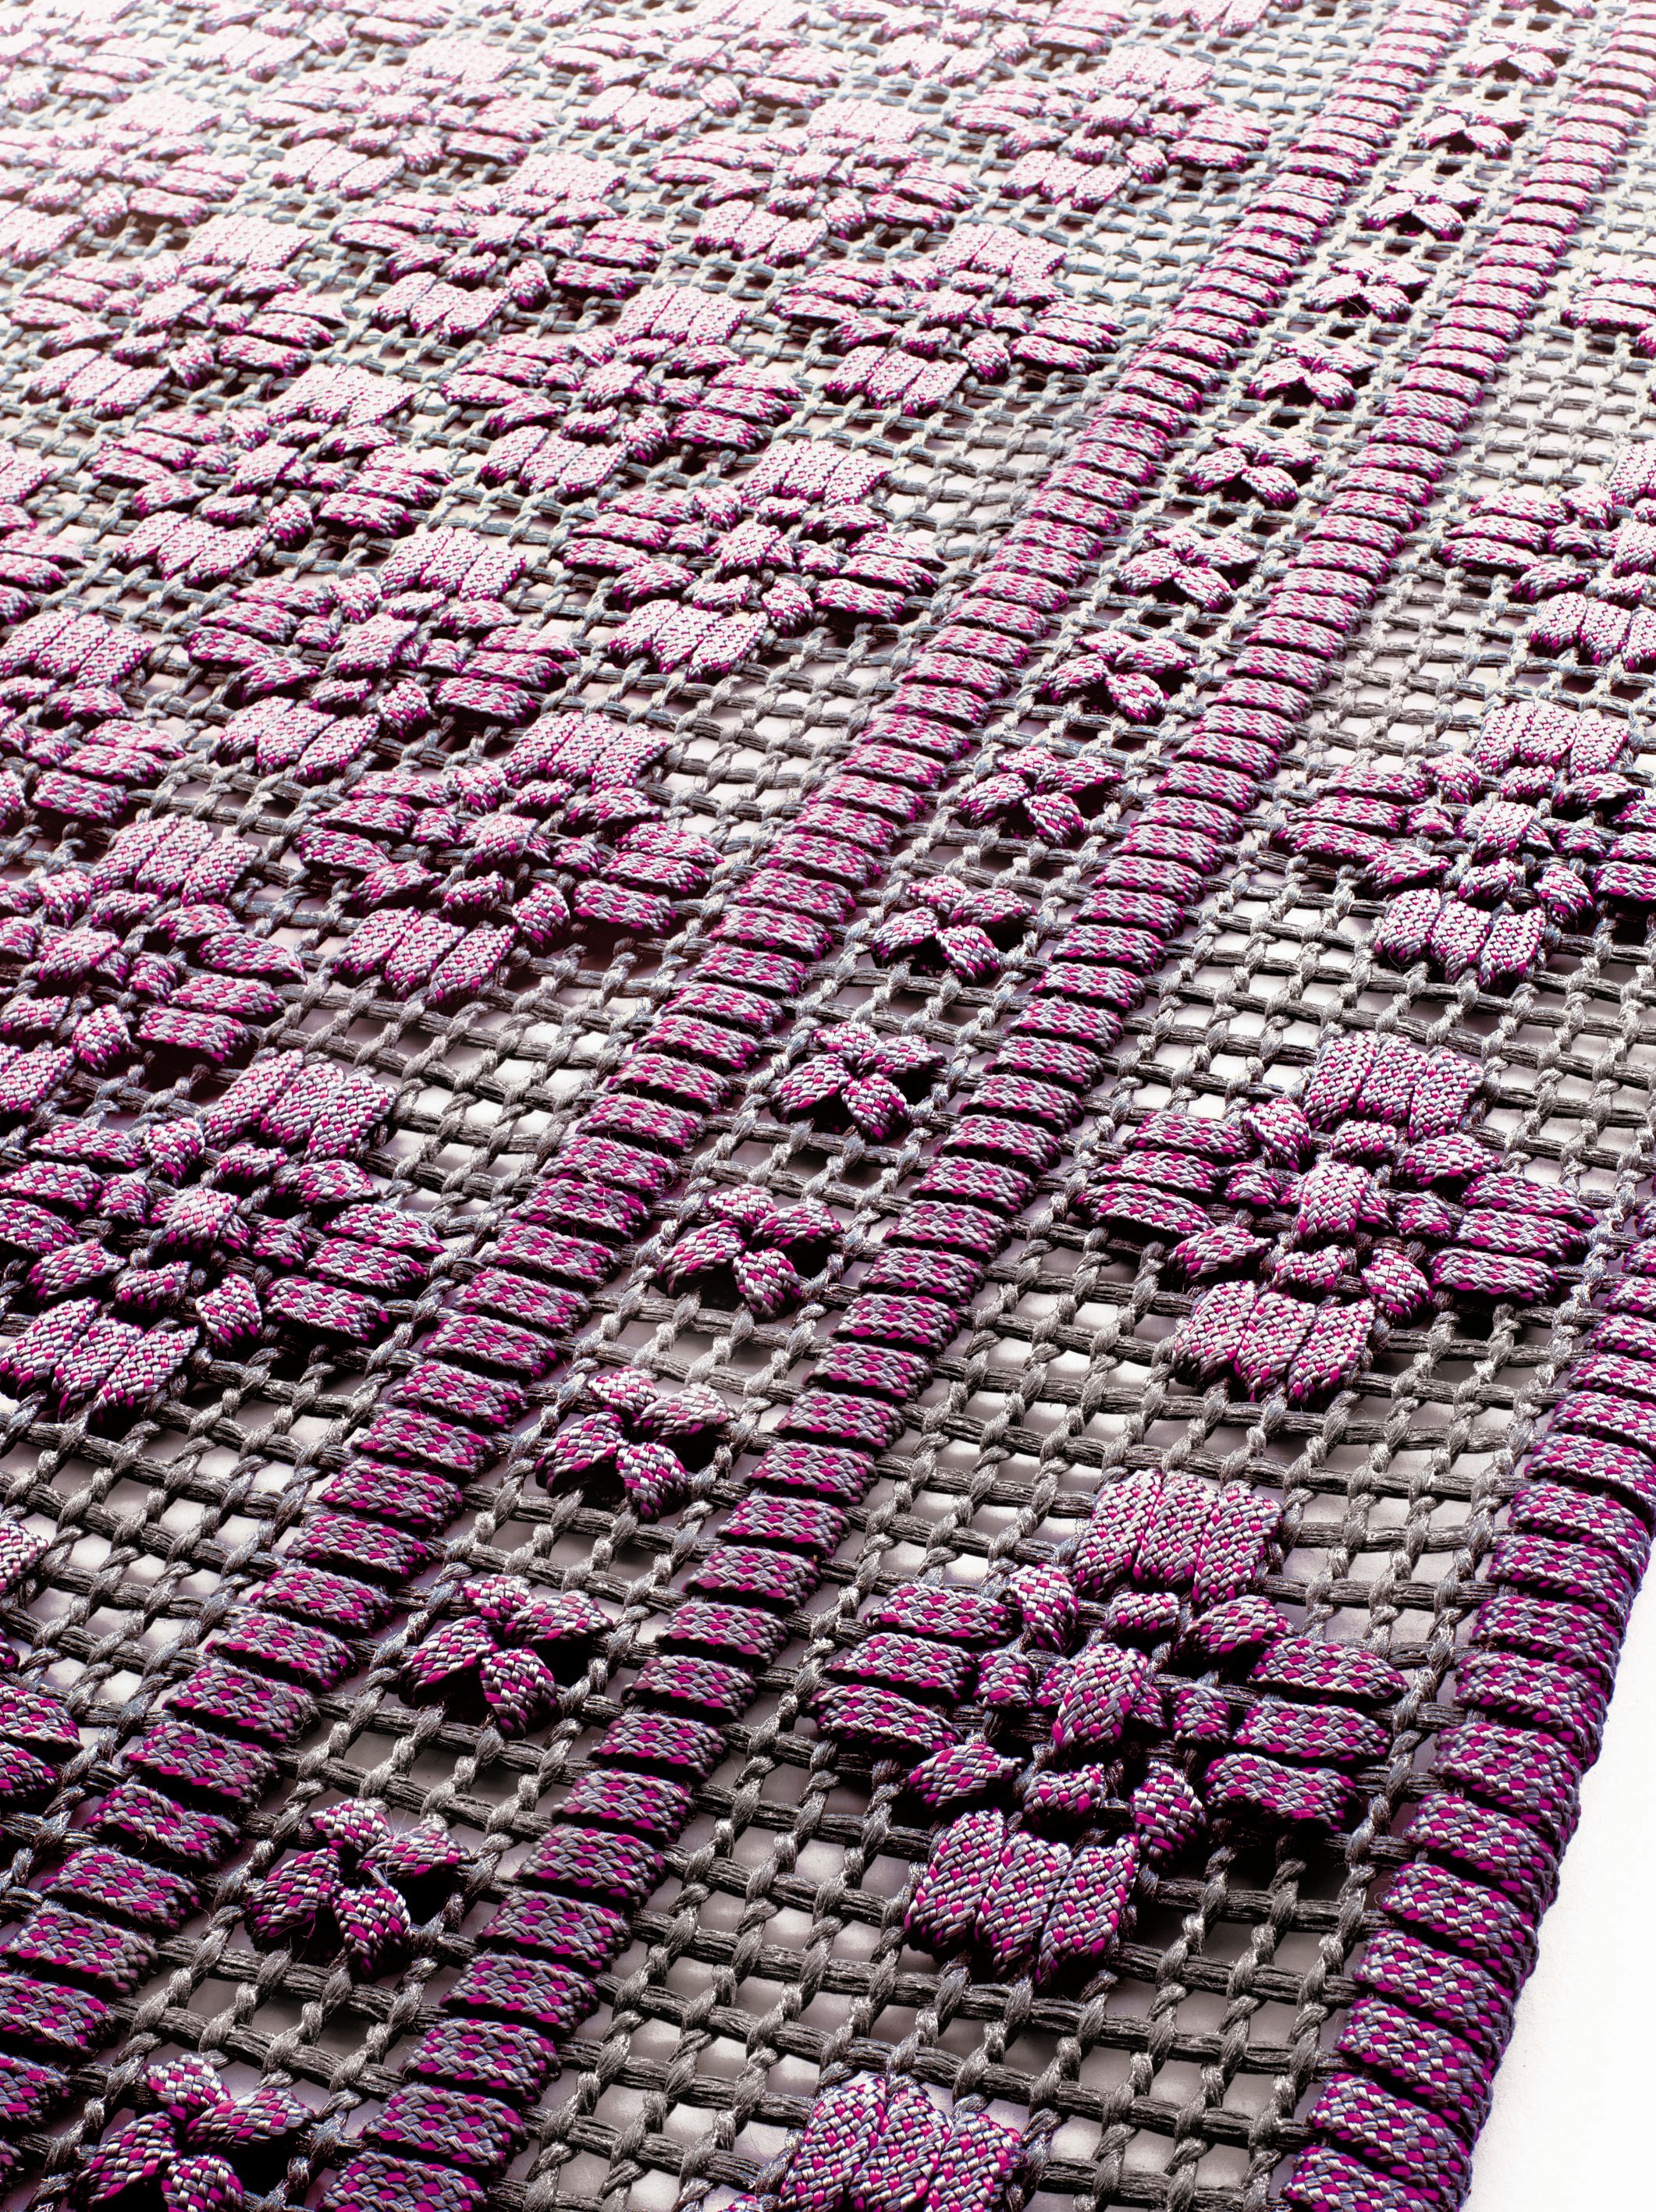 Handmade outdoor rug GIARDINO - Paola Lenti | Rugs and Carpets ...